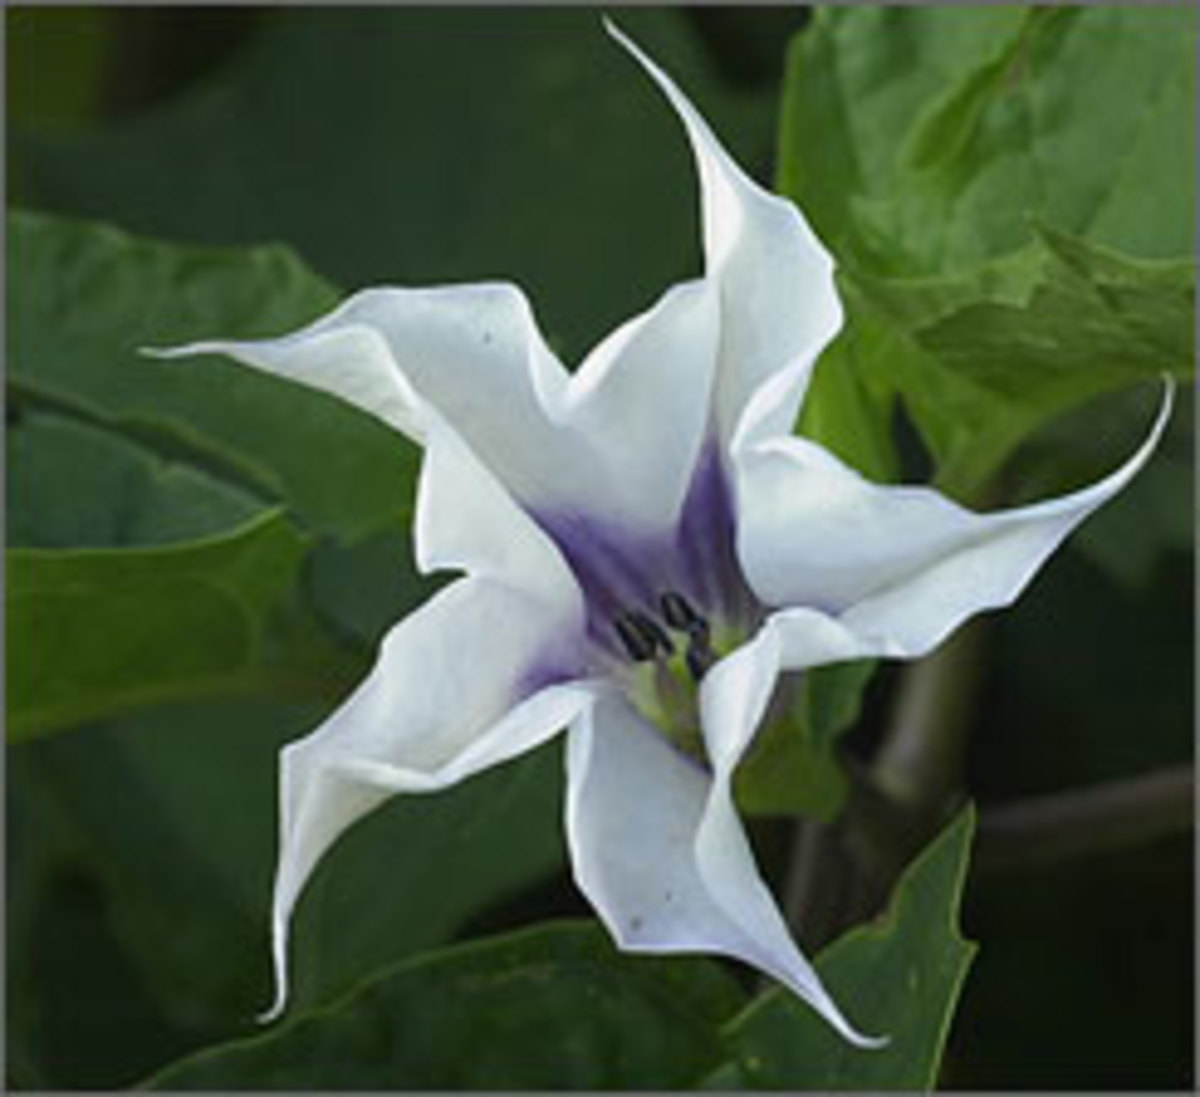 Poisonous and Hallucinogenic Plants -Datura Stramonium  (Jimson Weed)